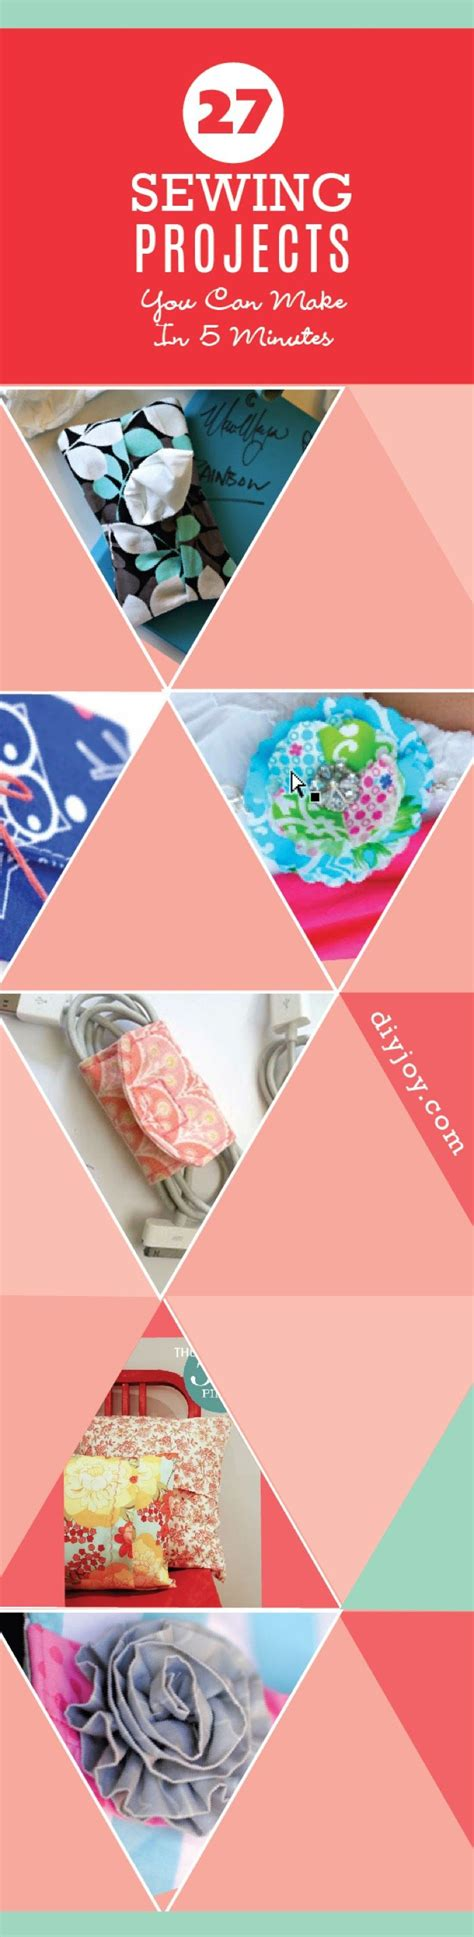 fast crafts for sewing projects easy sewing projects ideas